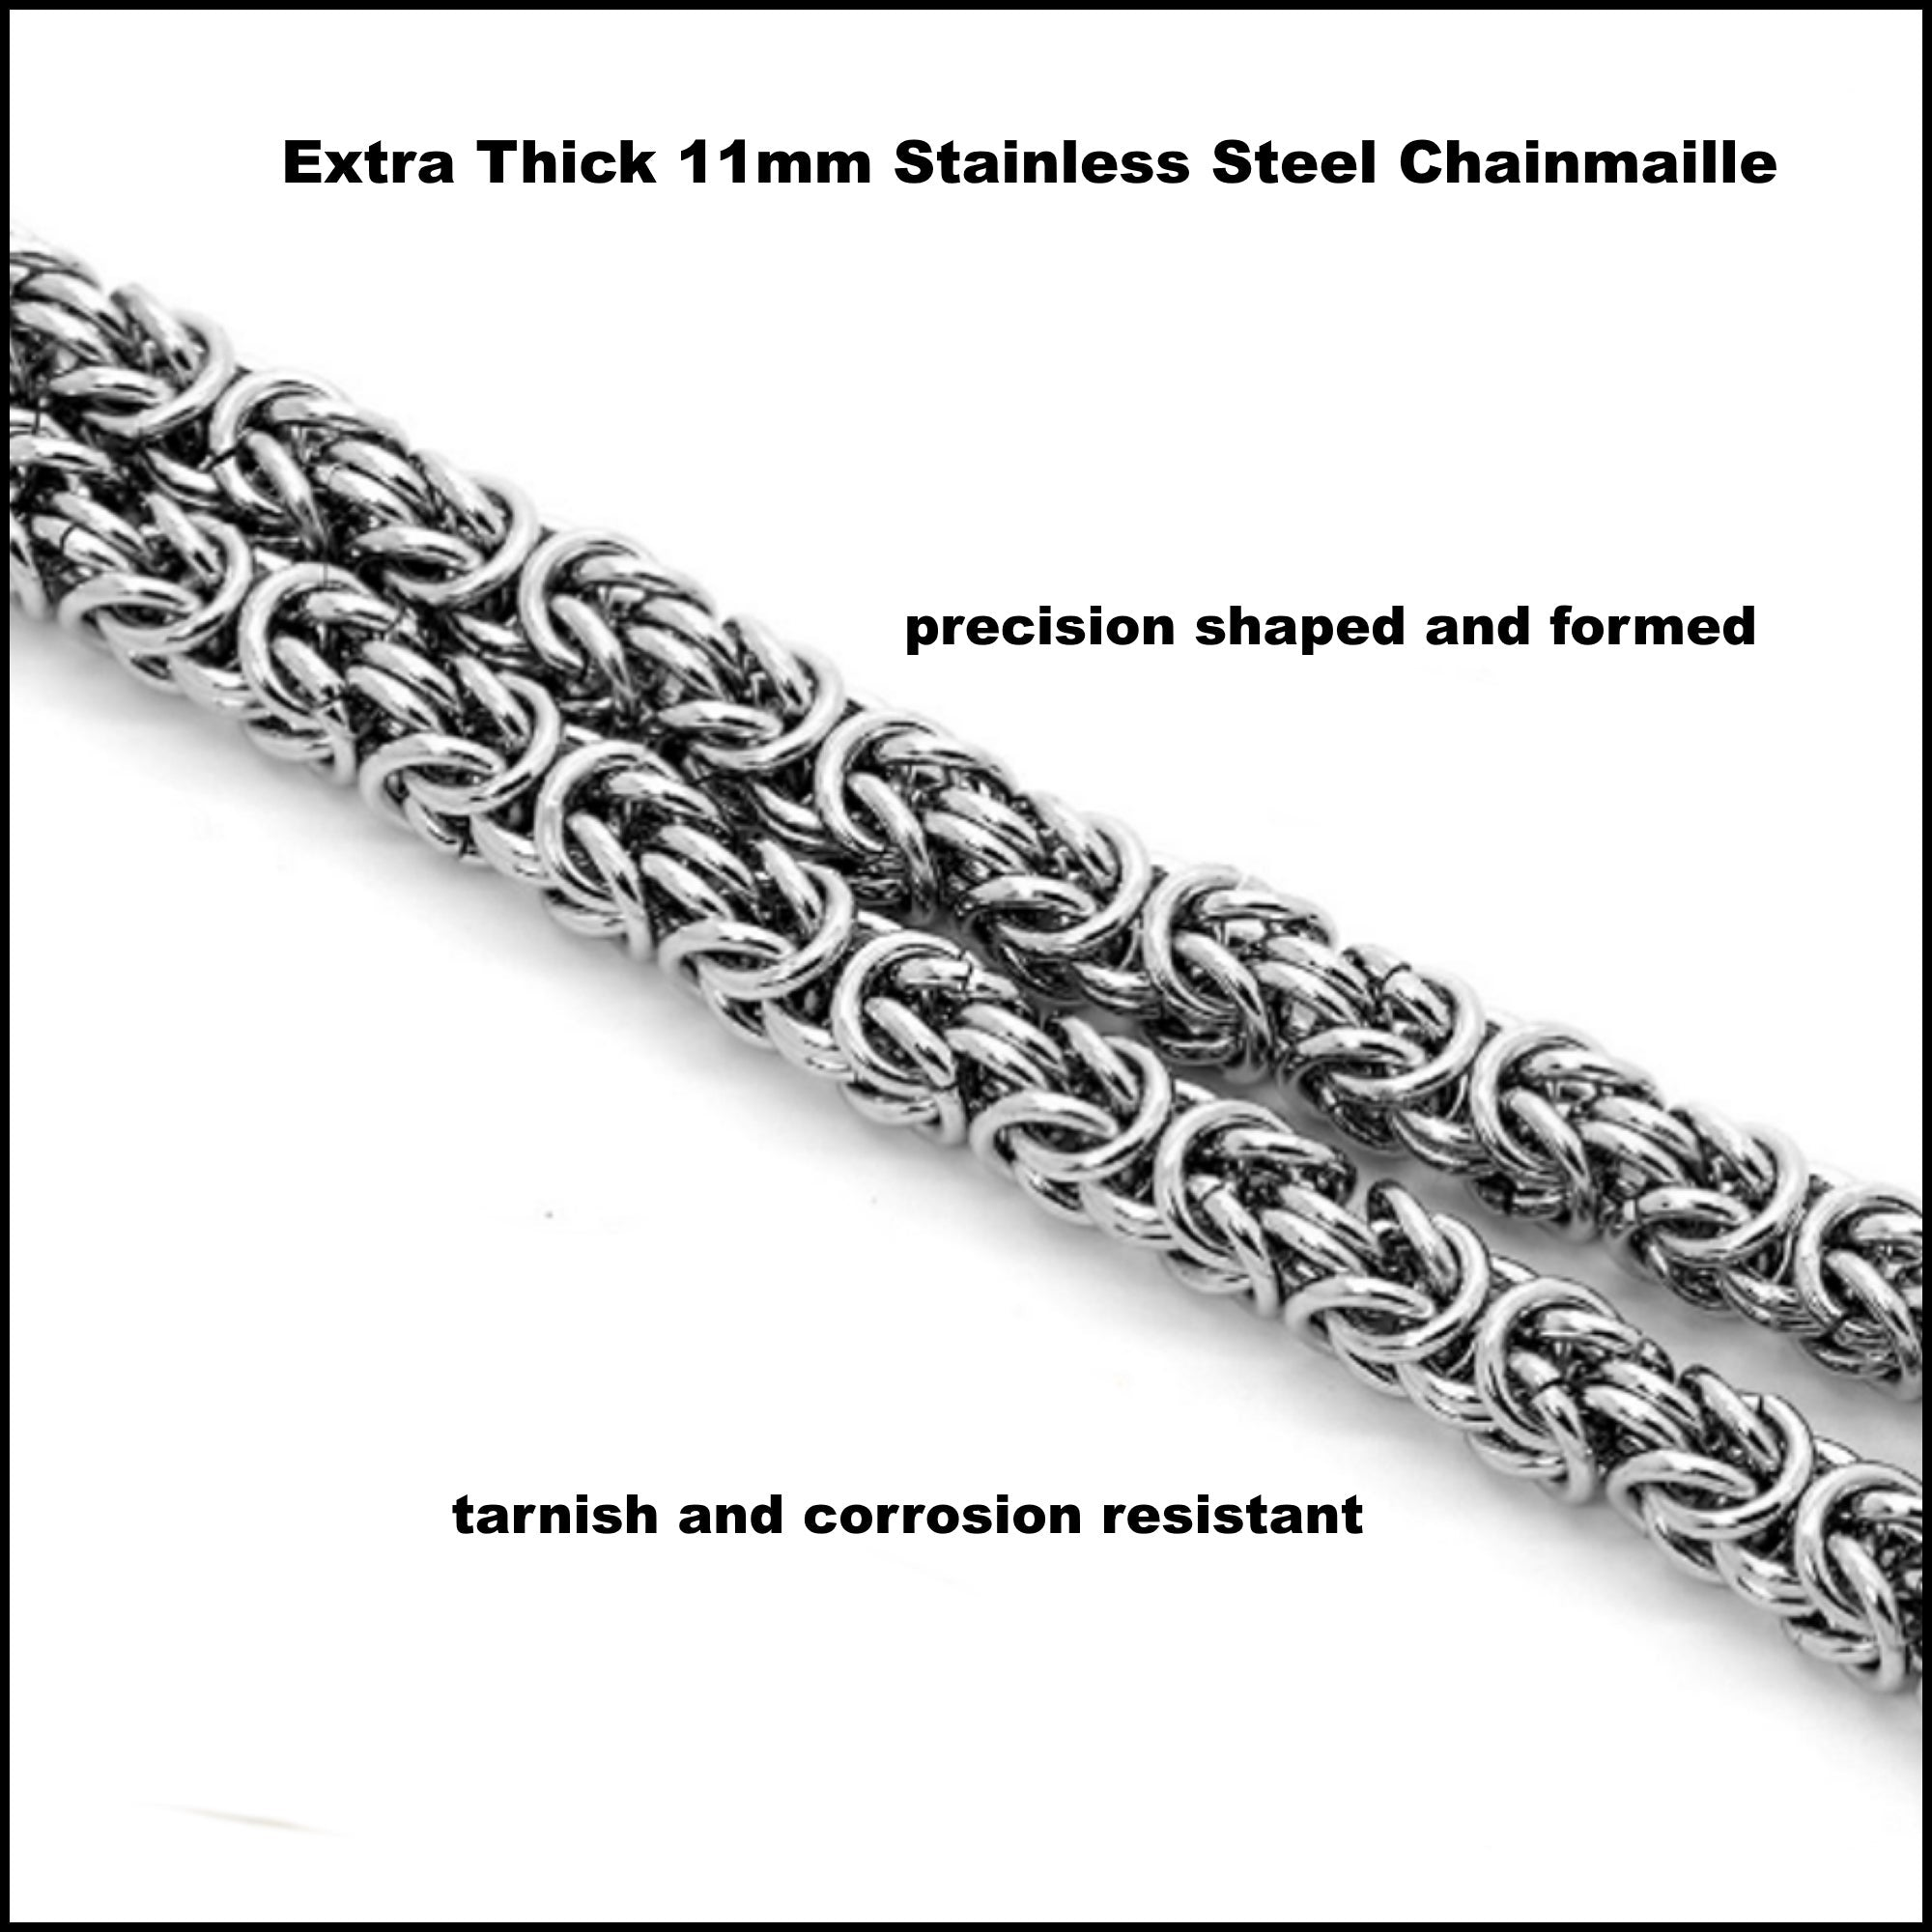 Techno Warrior Extra Thick 11mm Chainmaille Necklace with Multipurpose Connector Clasp